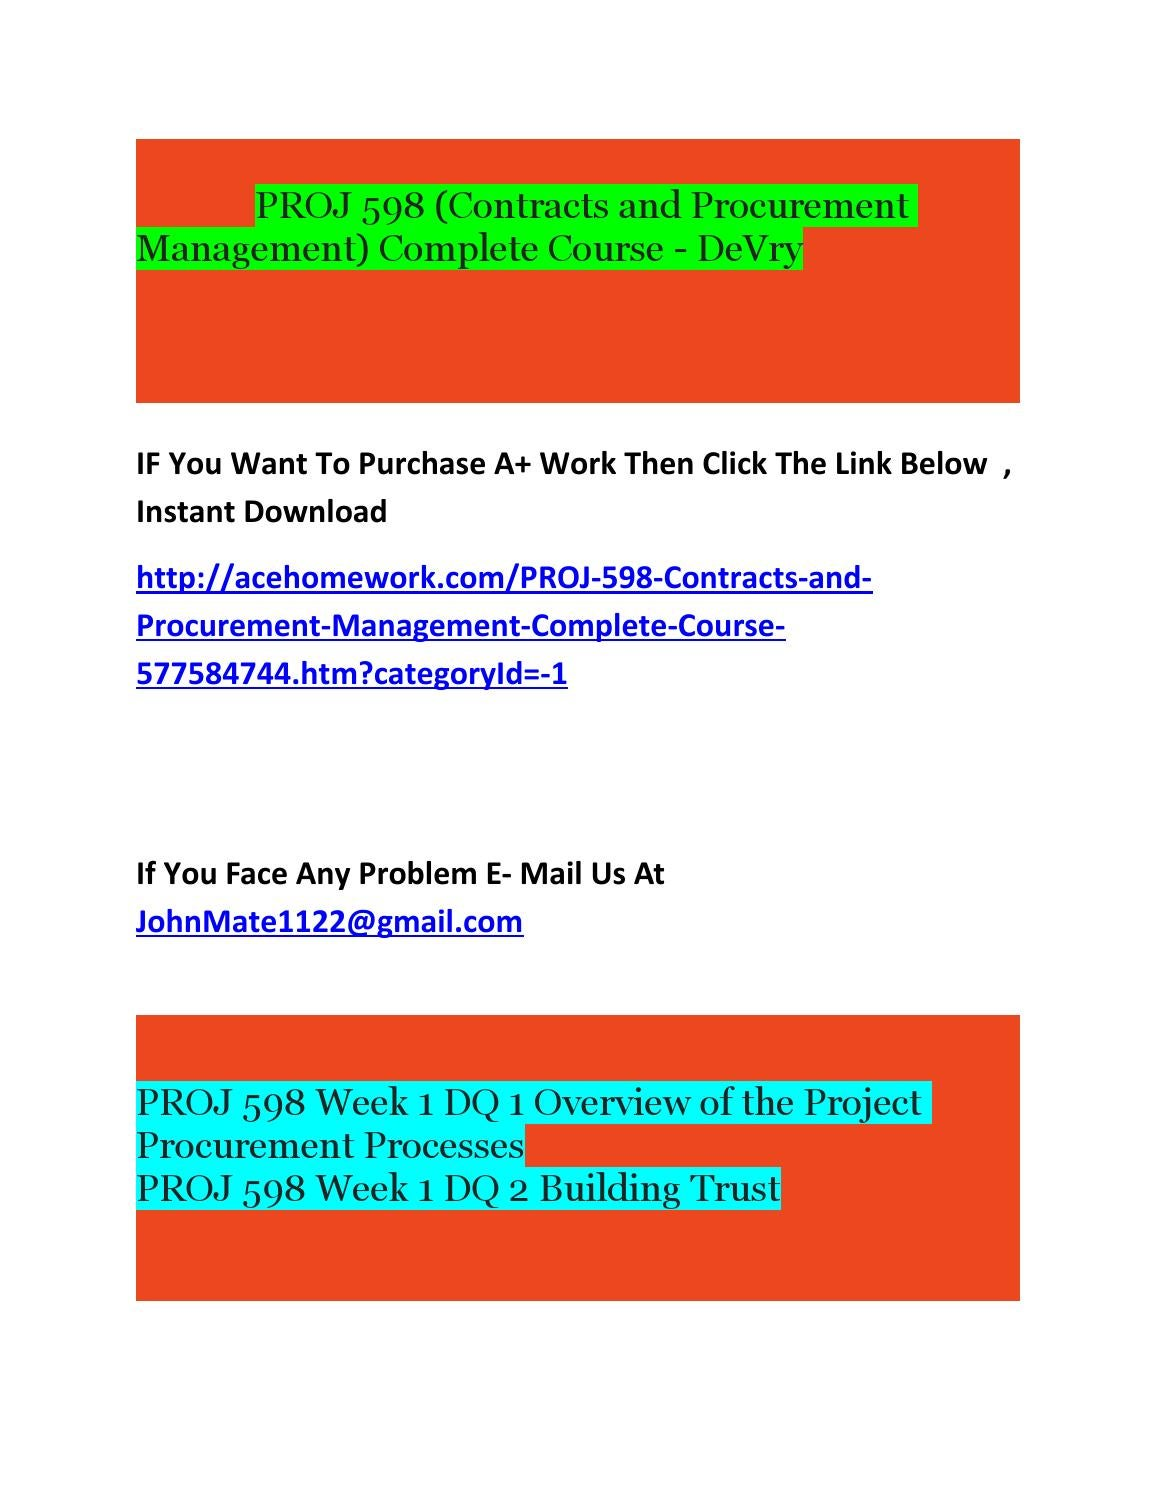 proj 598 week 3 quiz Essays - largest database of quality sample essays and research papers on proj 598 week 3 quiz.